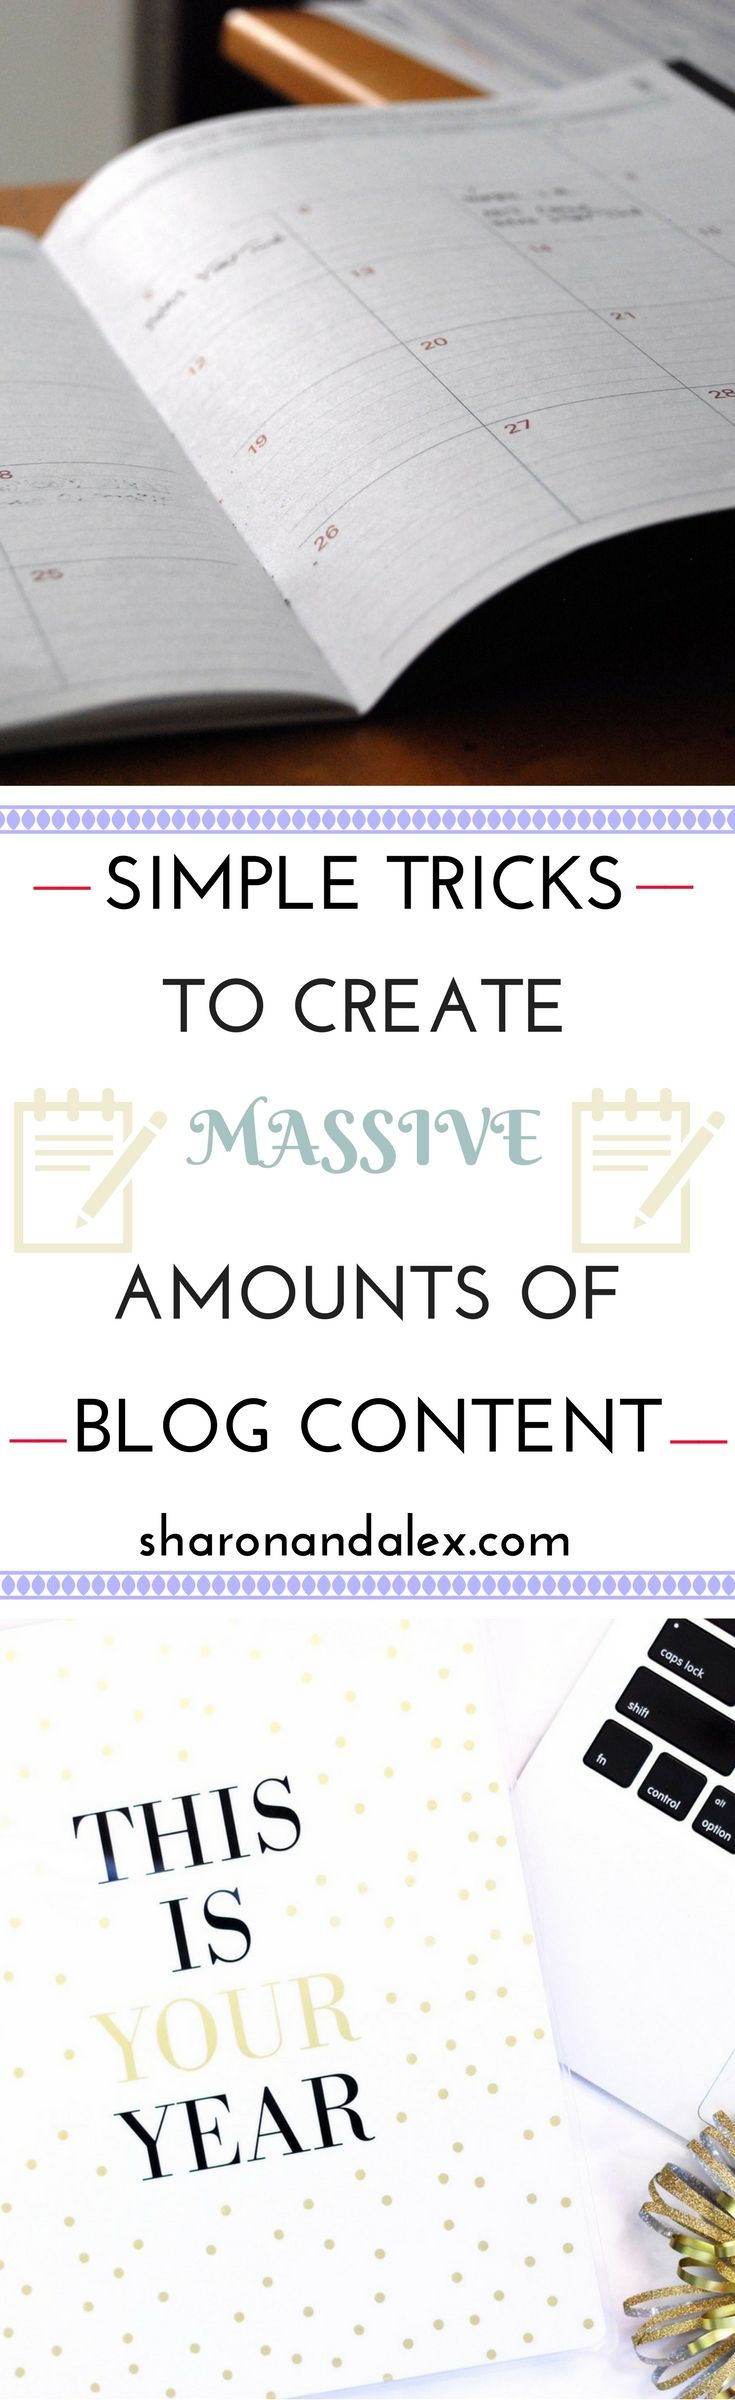 Planning blog posts is a lot of work. Wouldn't it be nice to have a stockpile of blog content just waiting for you to write about it? Here's how to do it! via @sharonandalex